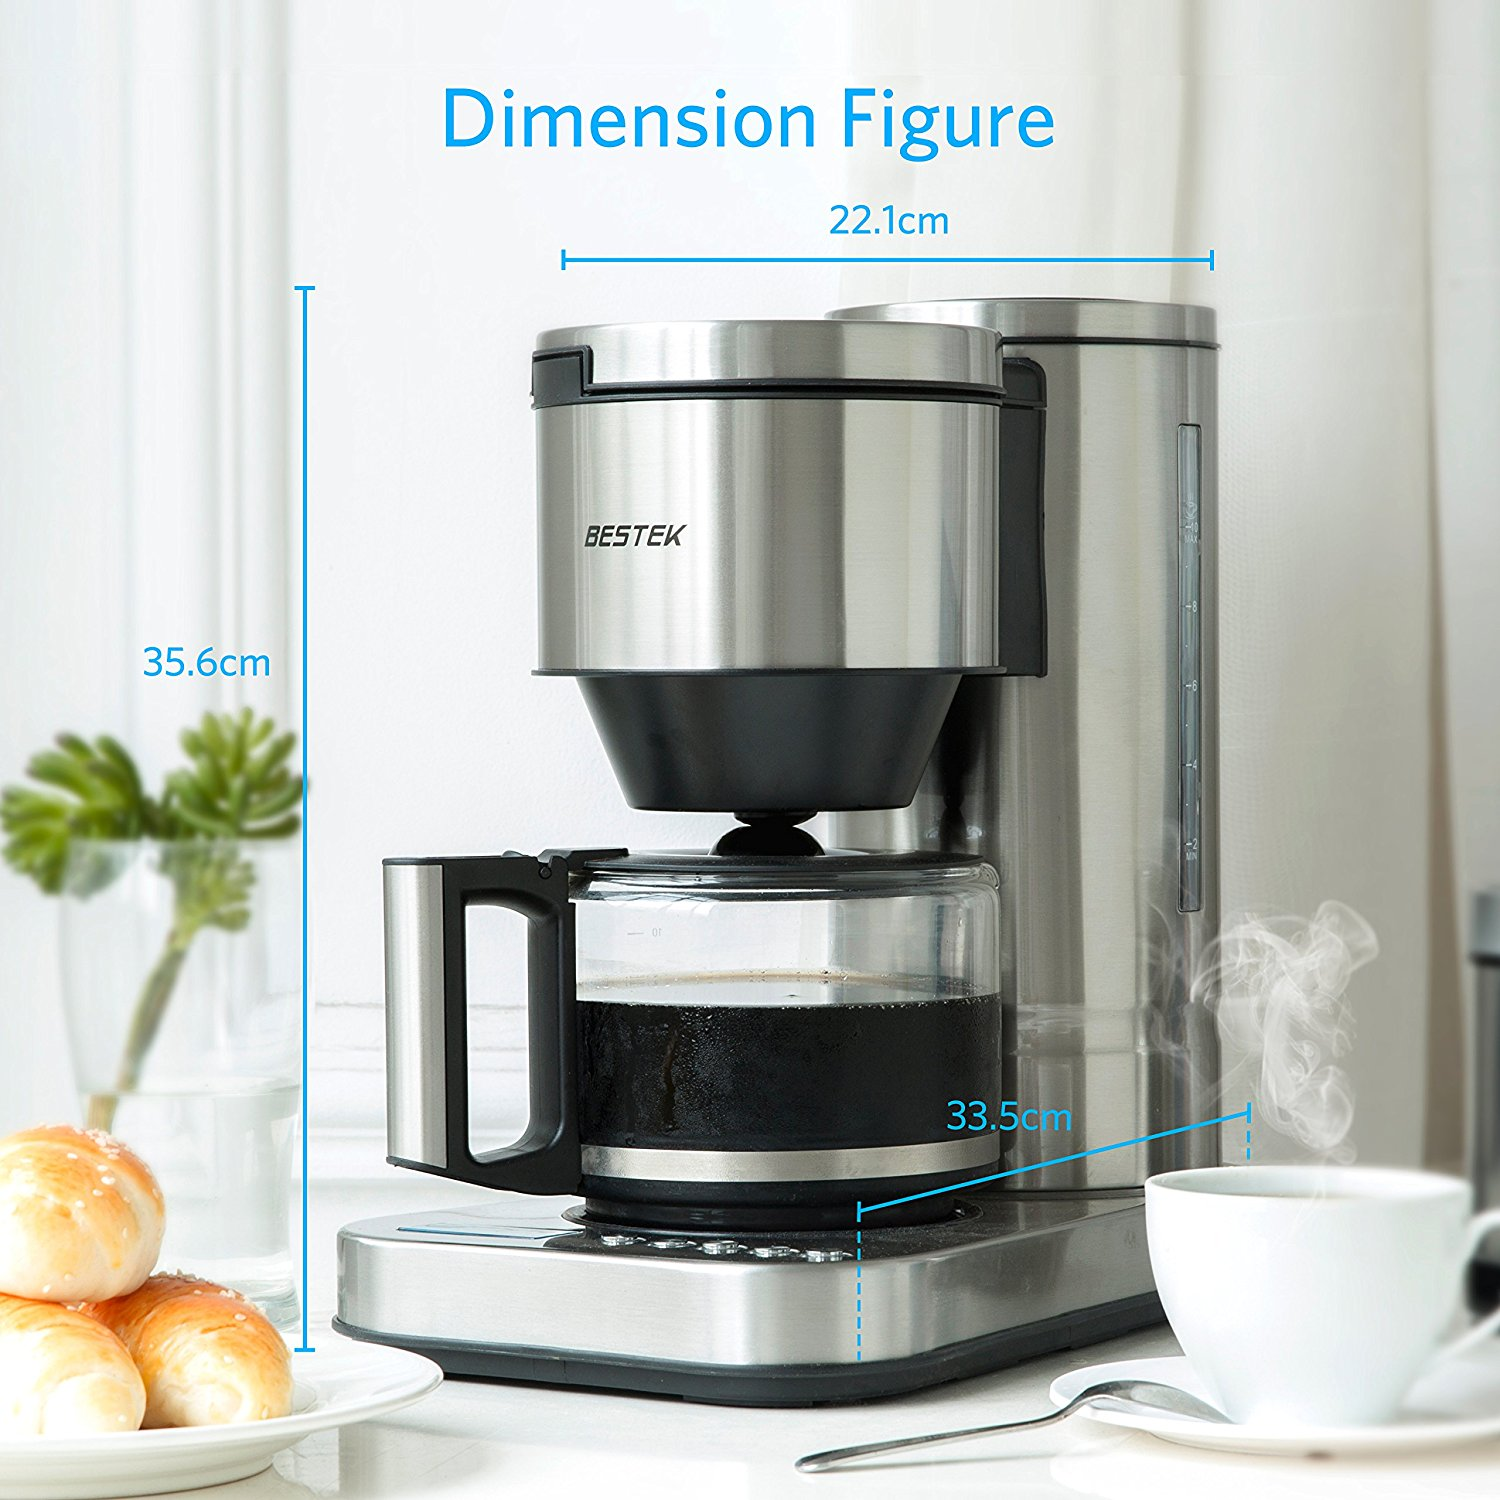 Best Coffee Makers Under 100 In 2018 Quality Researched